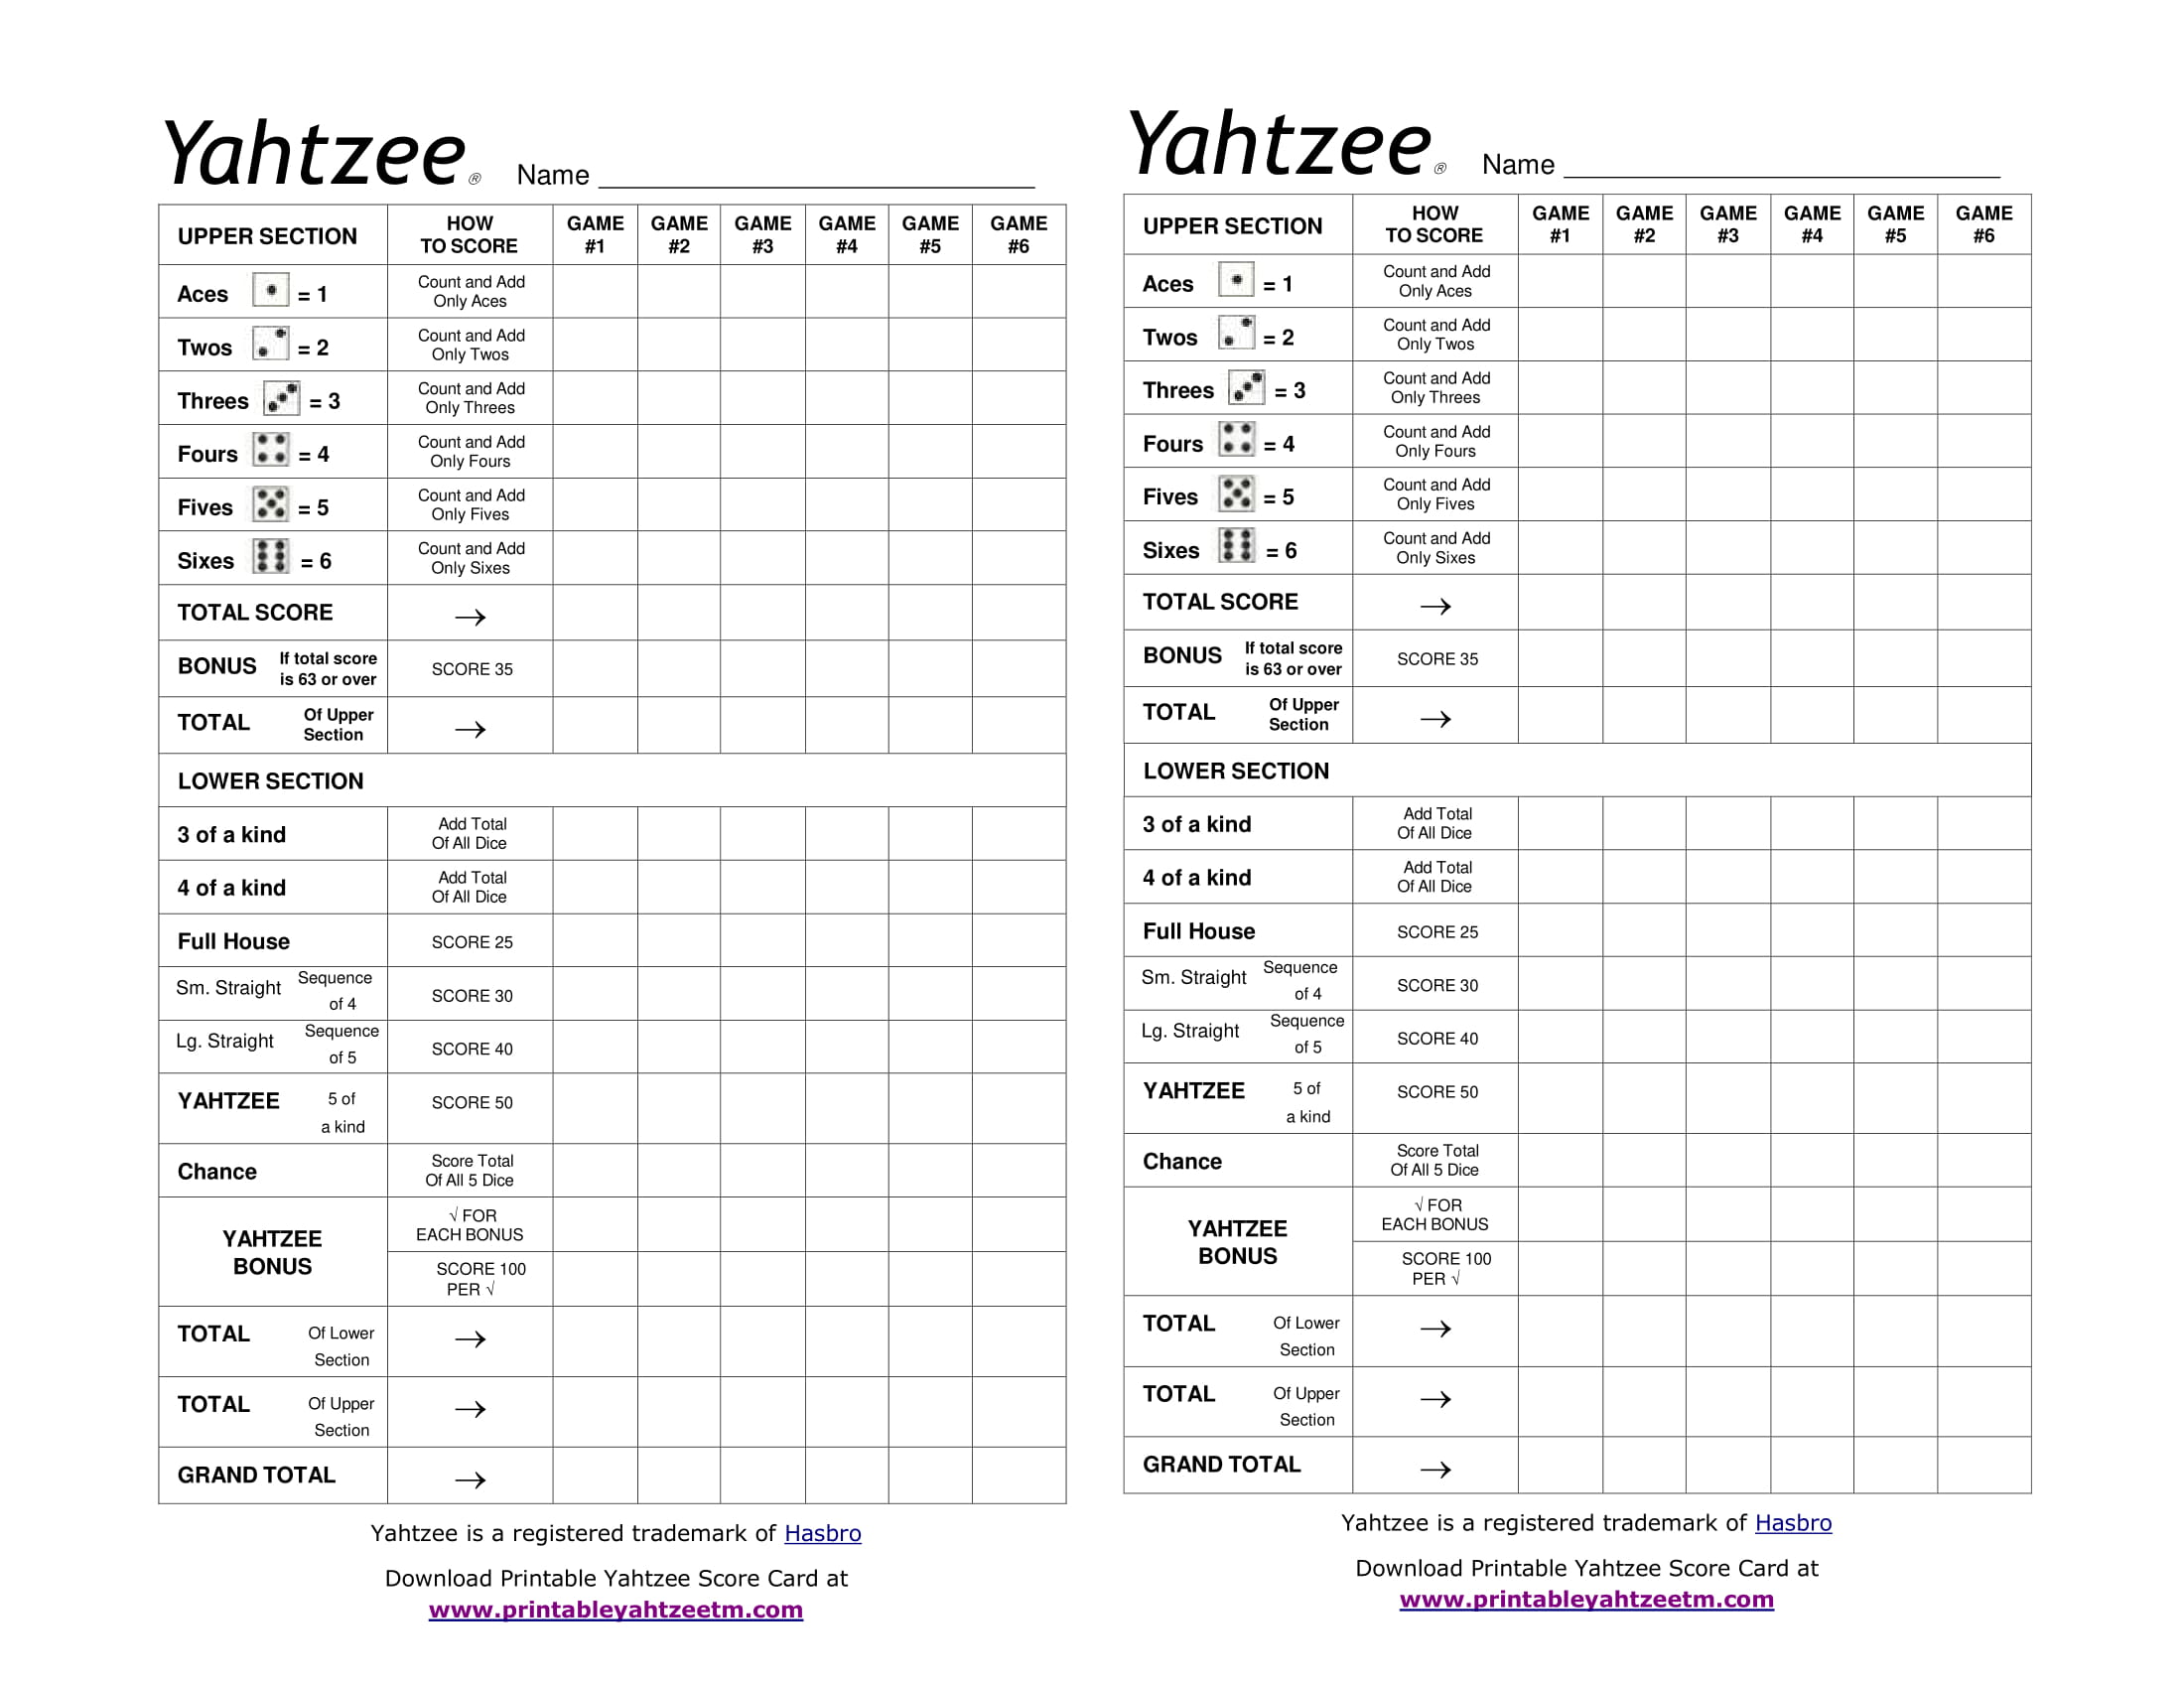 Printable Yahtzee Score Card-1